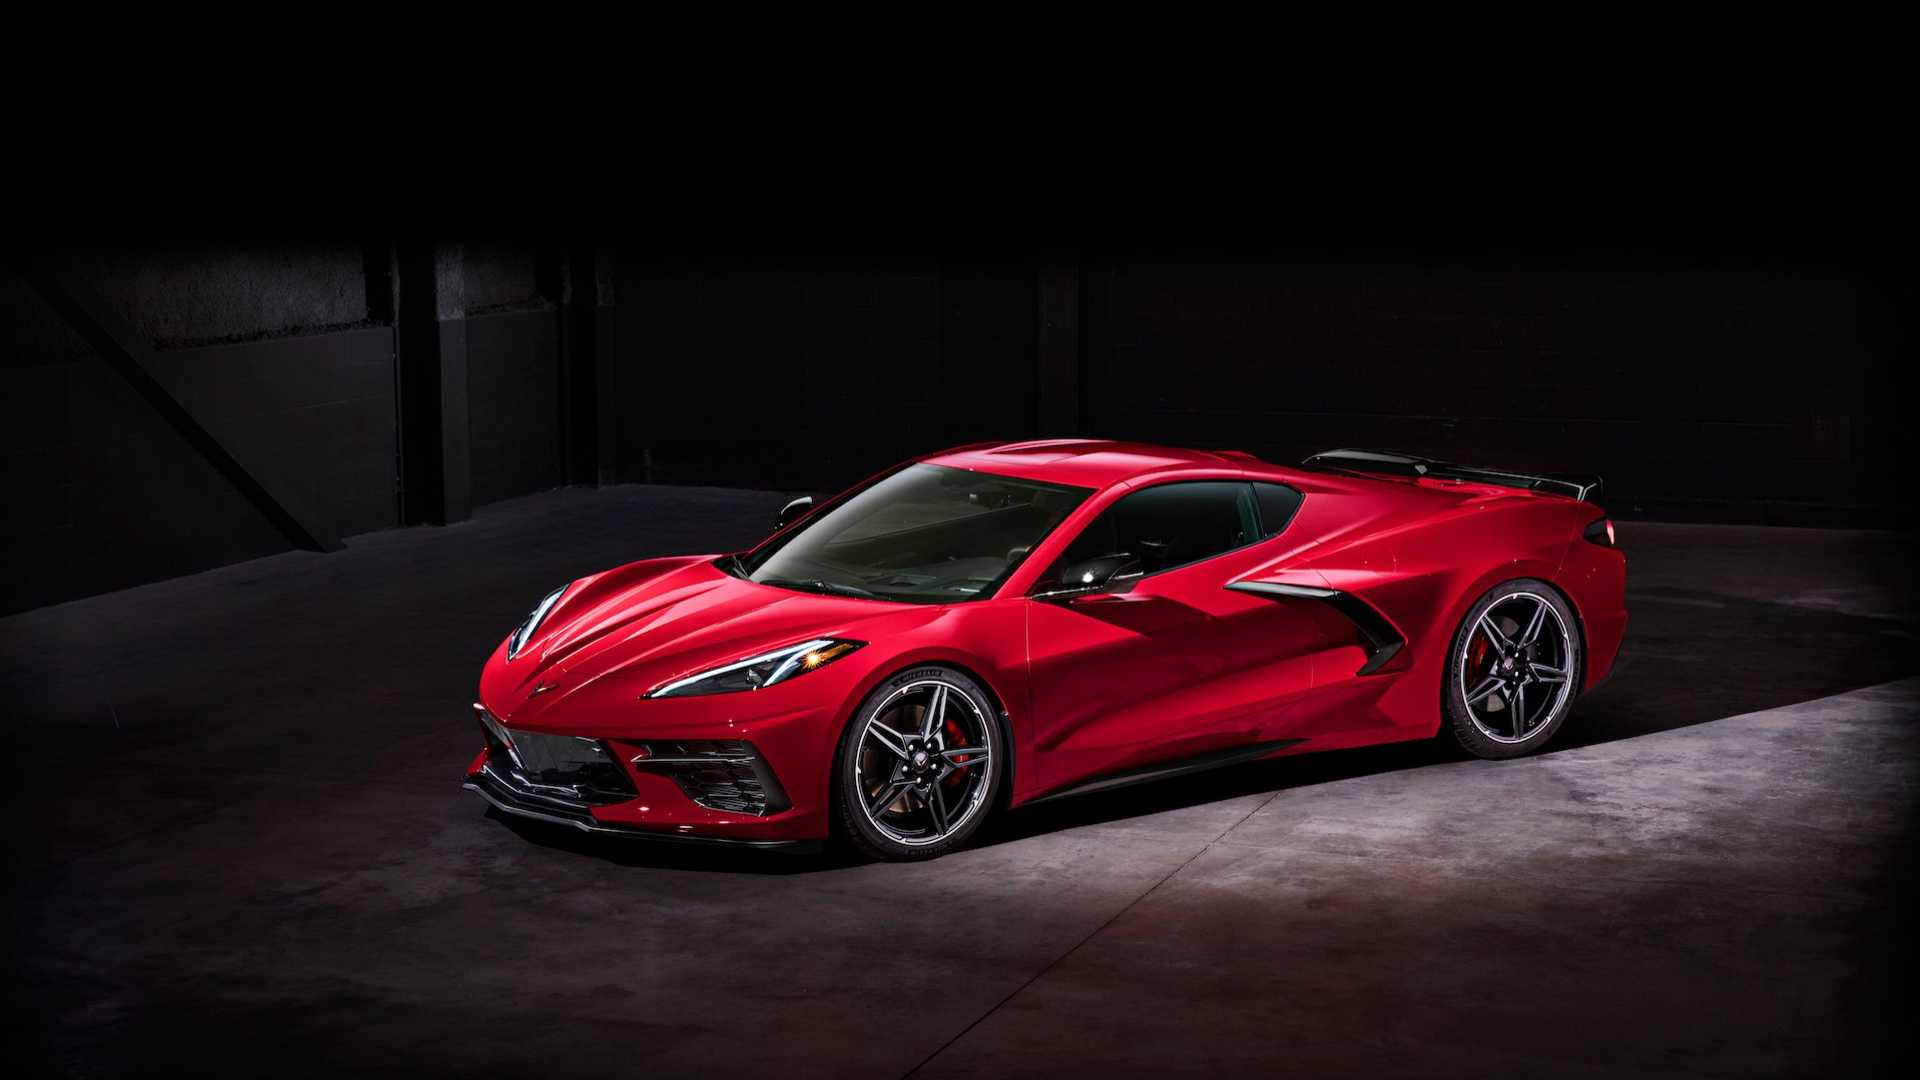 2020 Chevrolet Corvette C8 Stringray 2